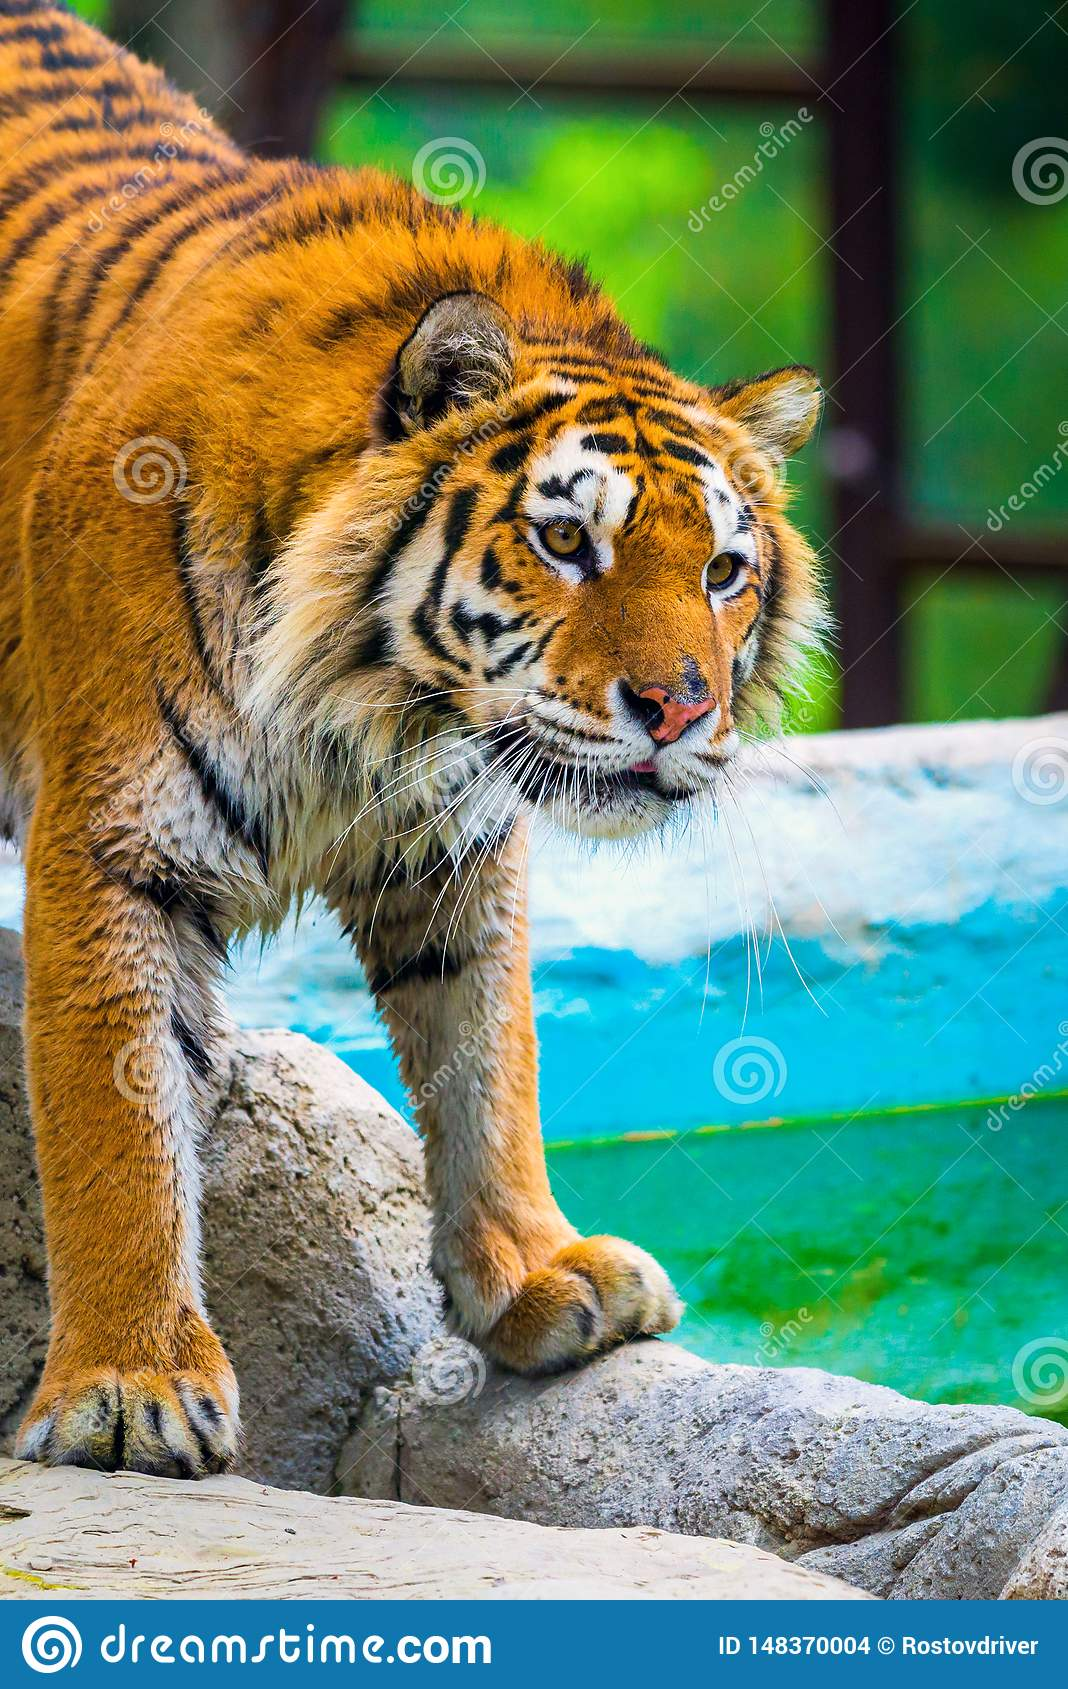 Siberian tiger portrait. Aggressive stare face meaning danger for the prey. Closeup view to angry expression